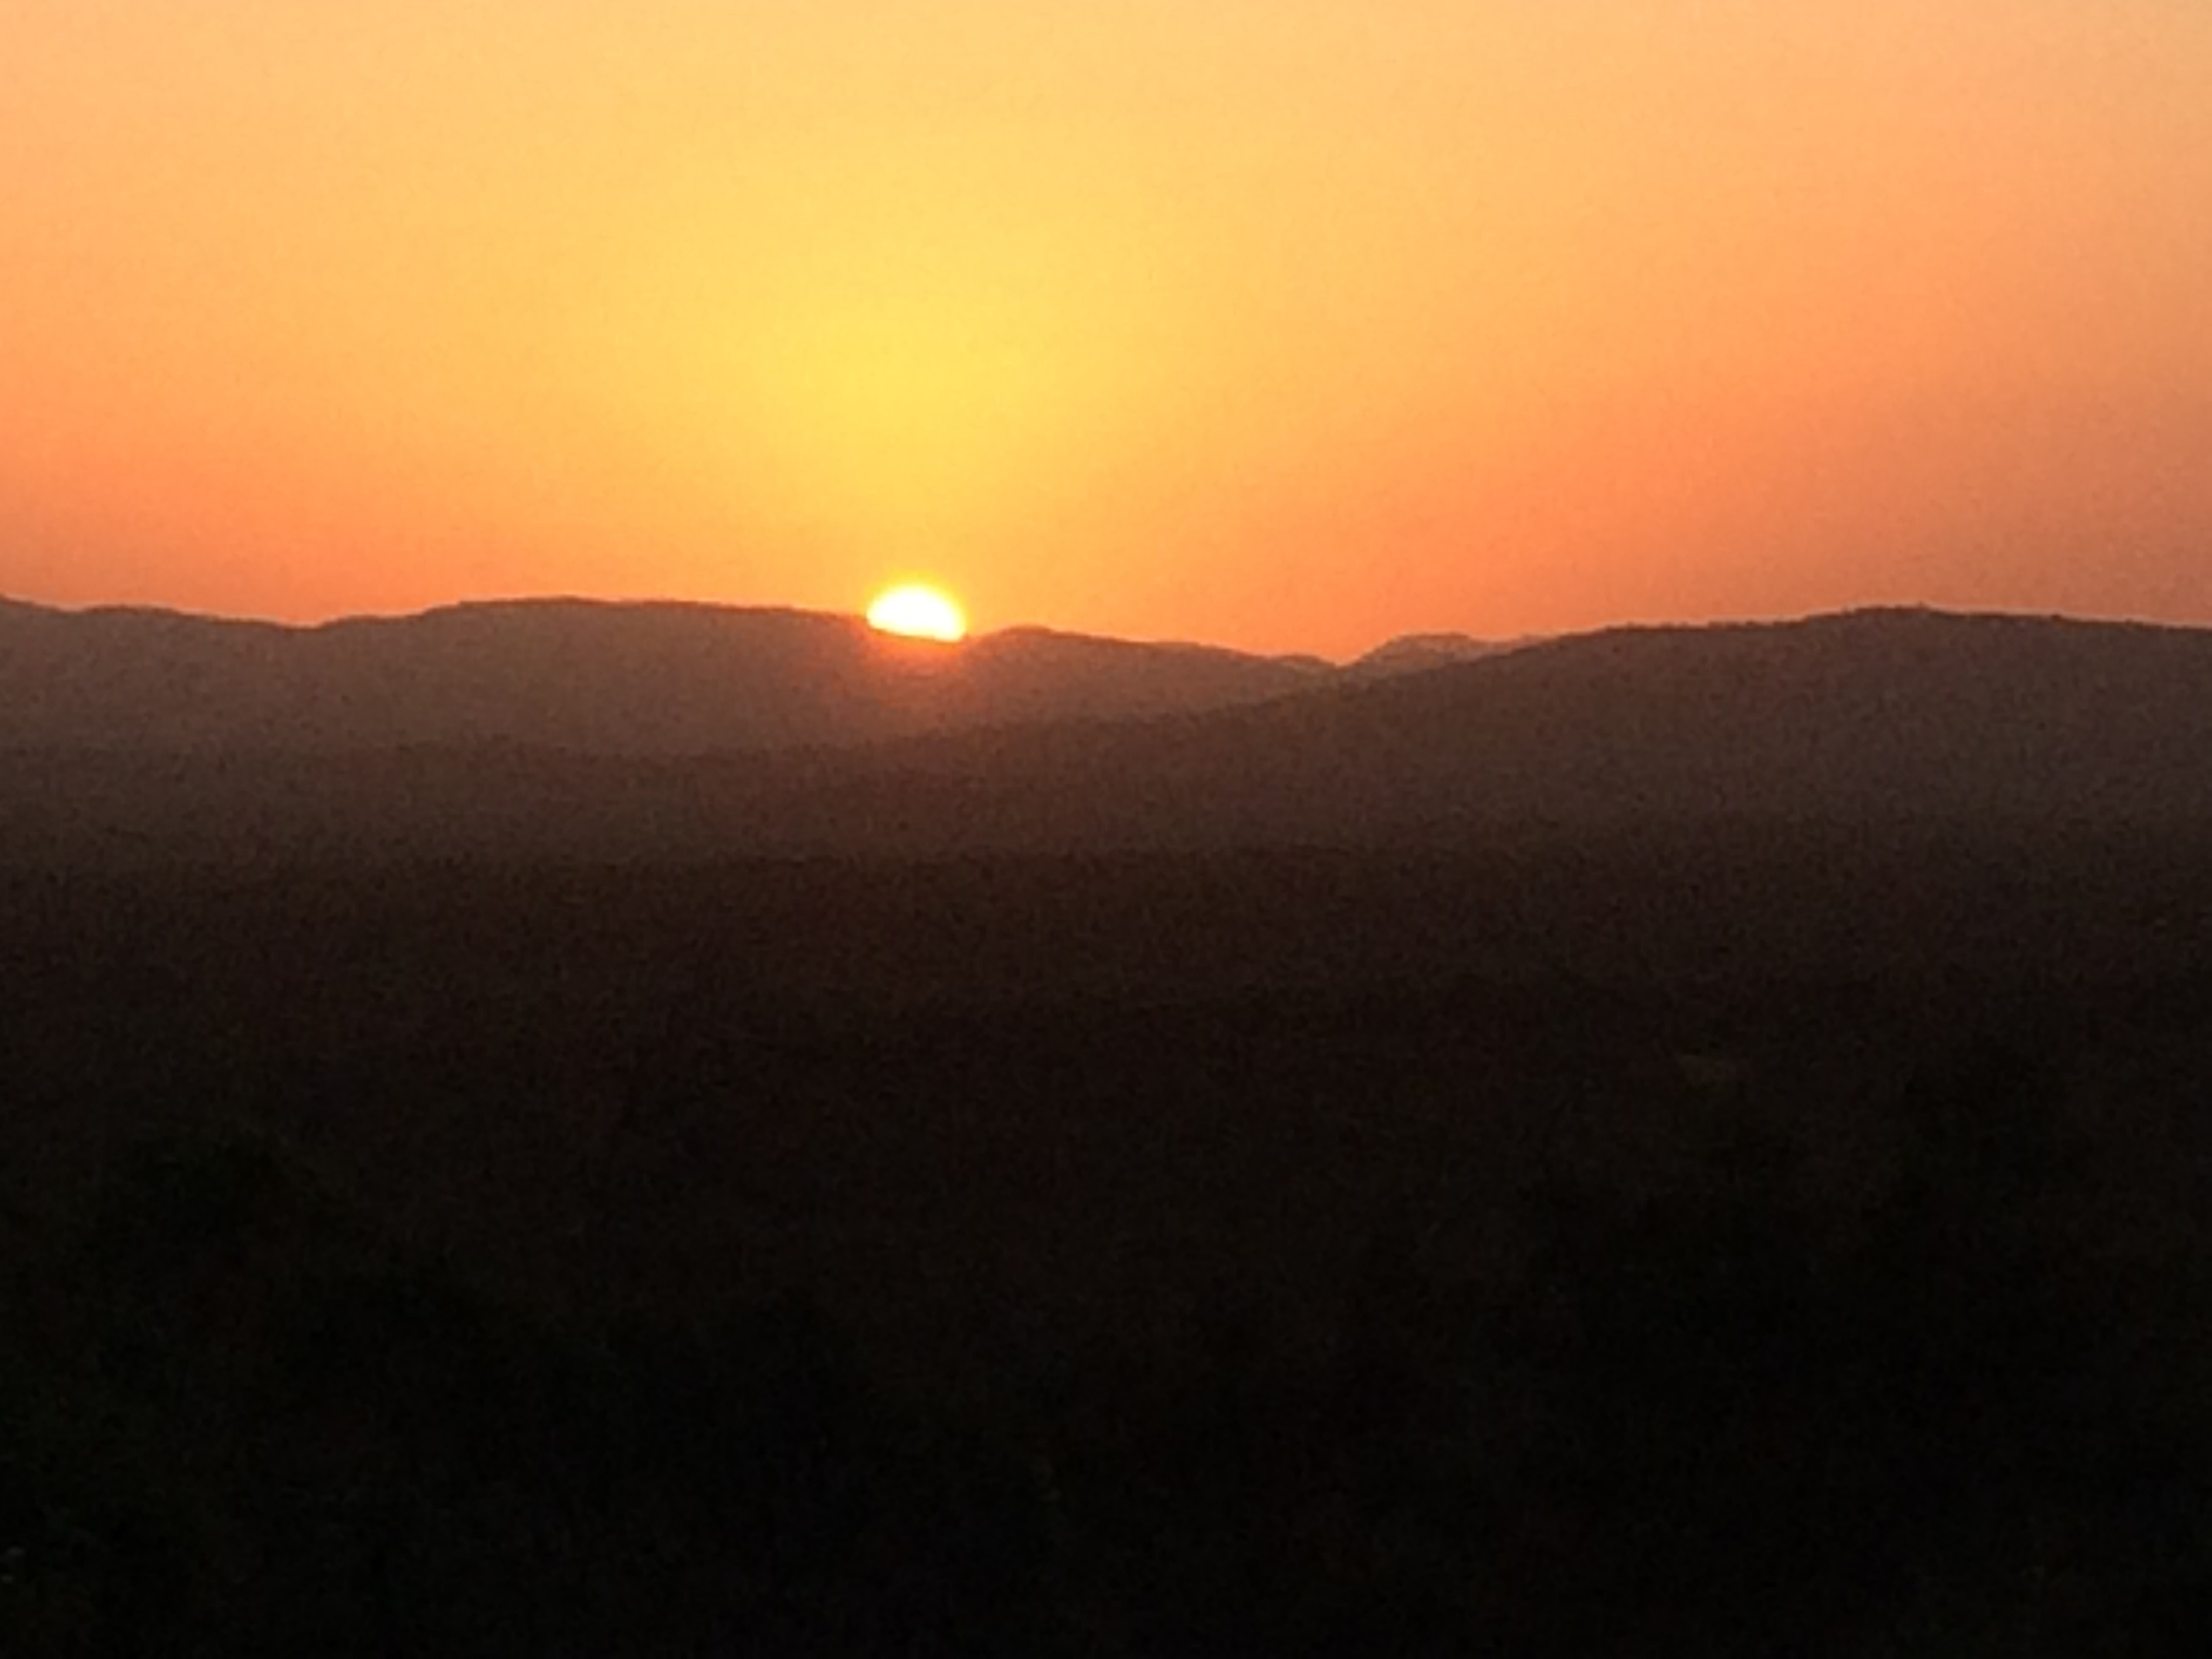 sunset over the bush.JPG